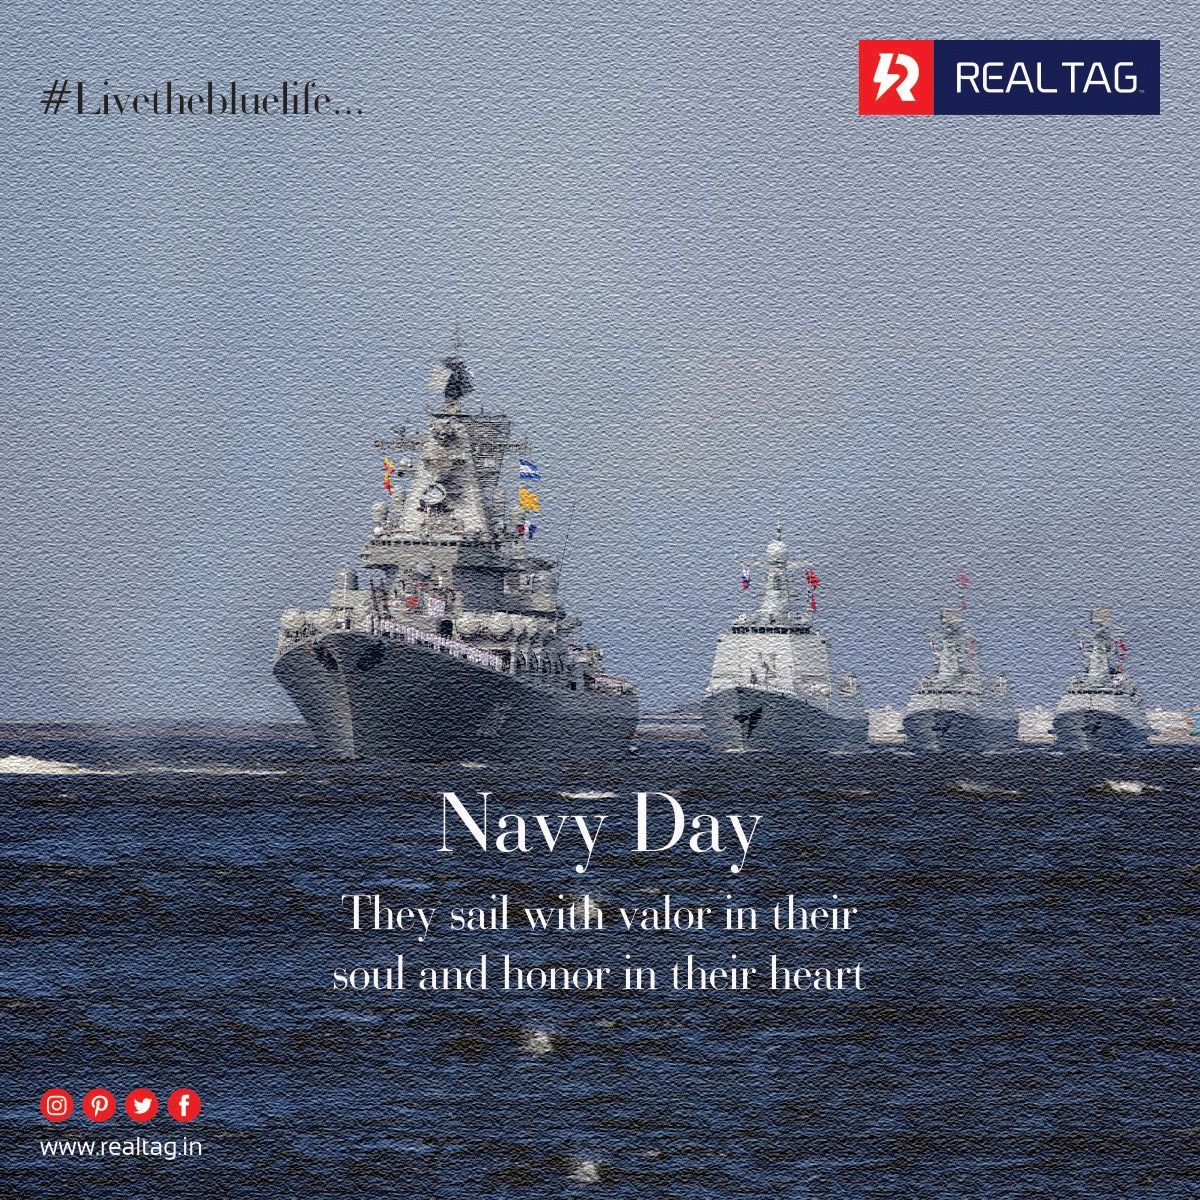 They Sail With Valor In Their Soul And Honor In Their Heart Indian Navy Day Realtag Livethebluelife Indian Navy Day Navy Day Indian Navy Day Indian Navy